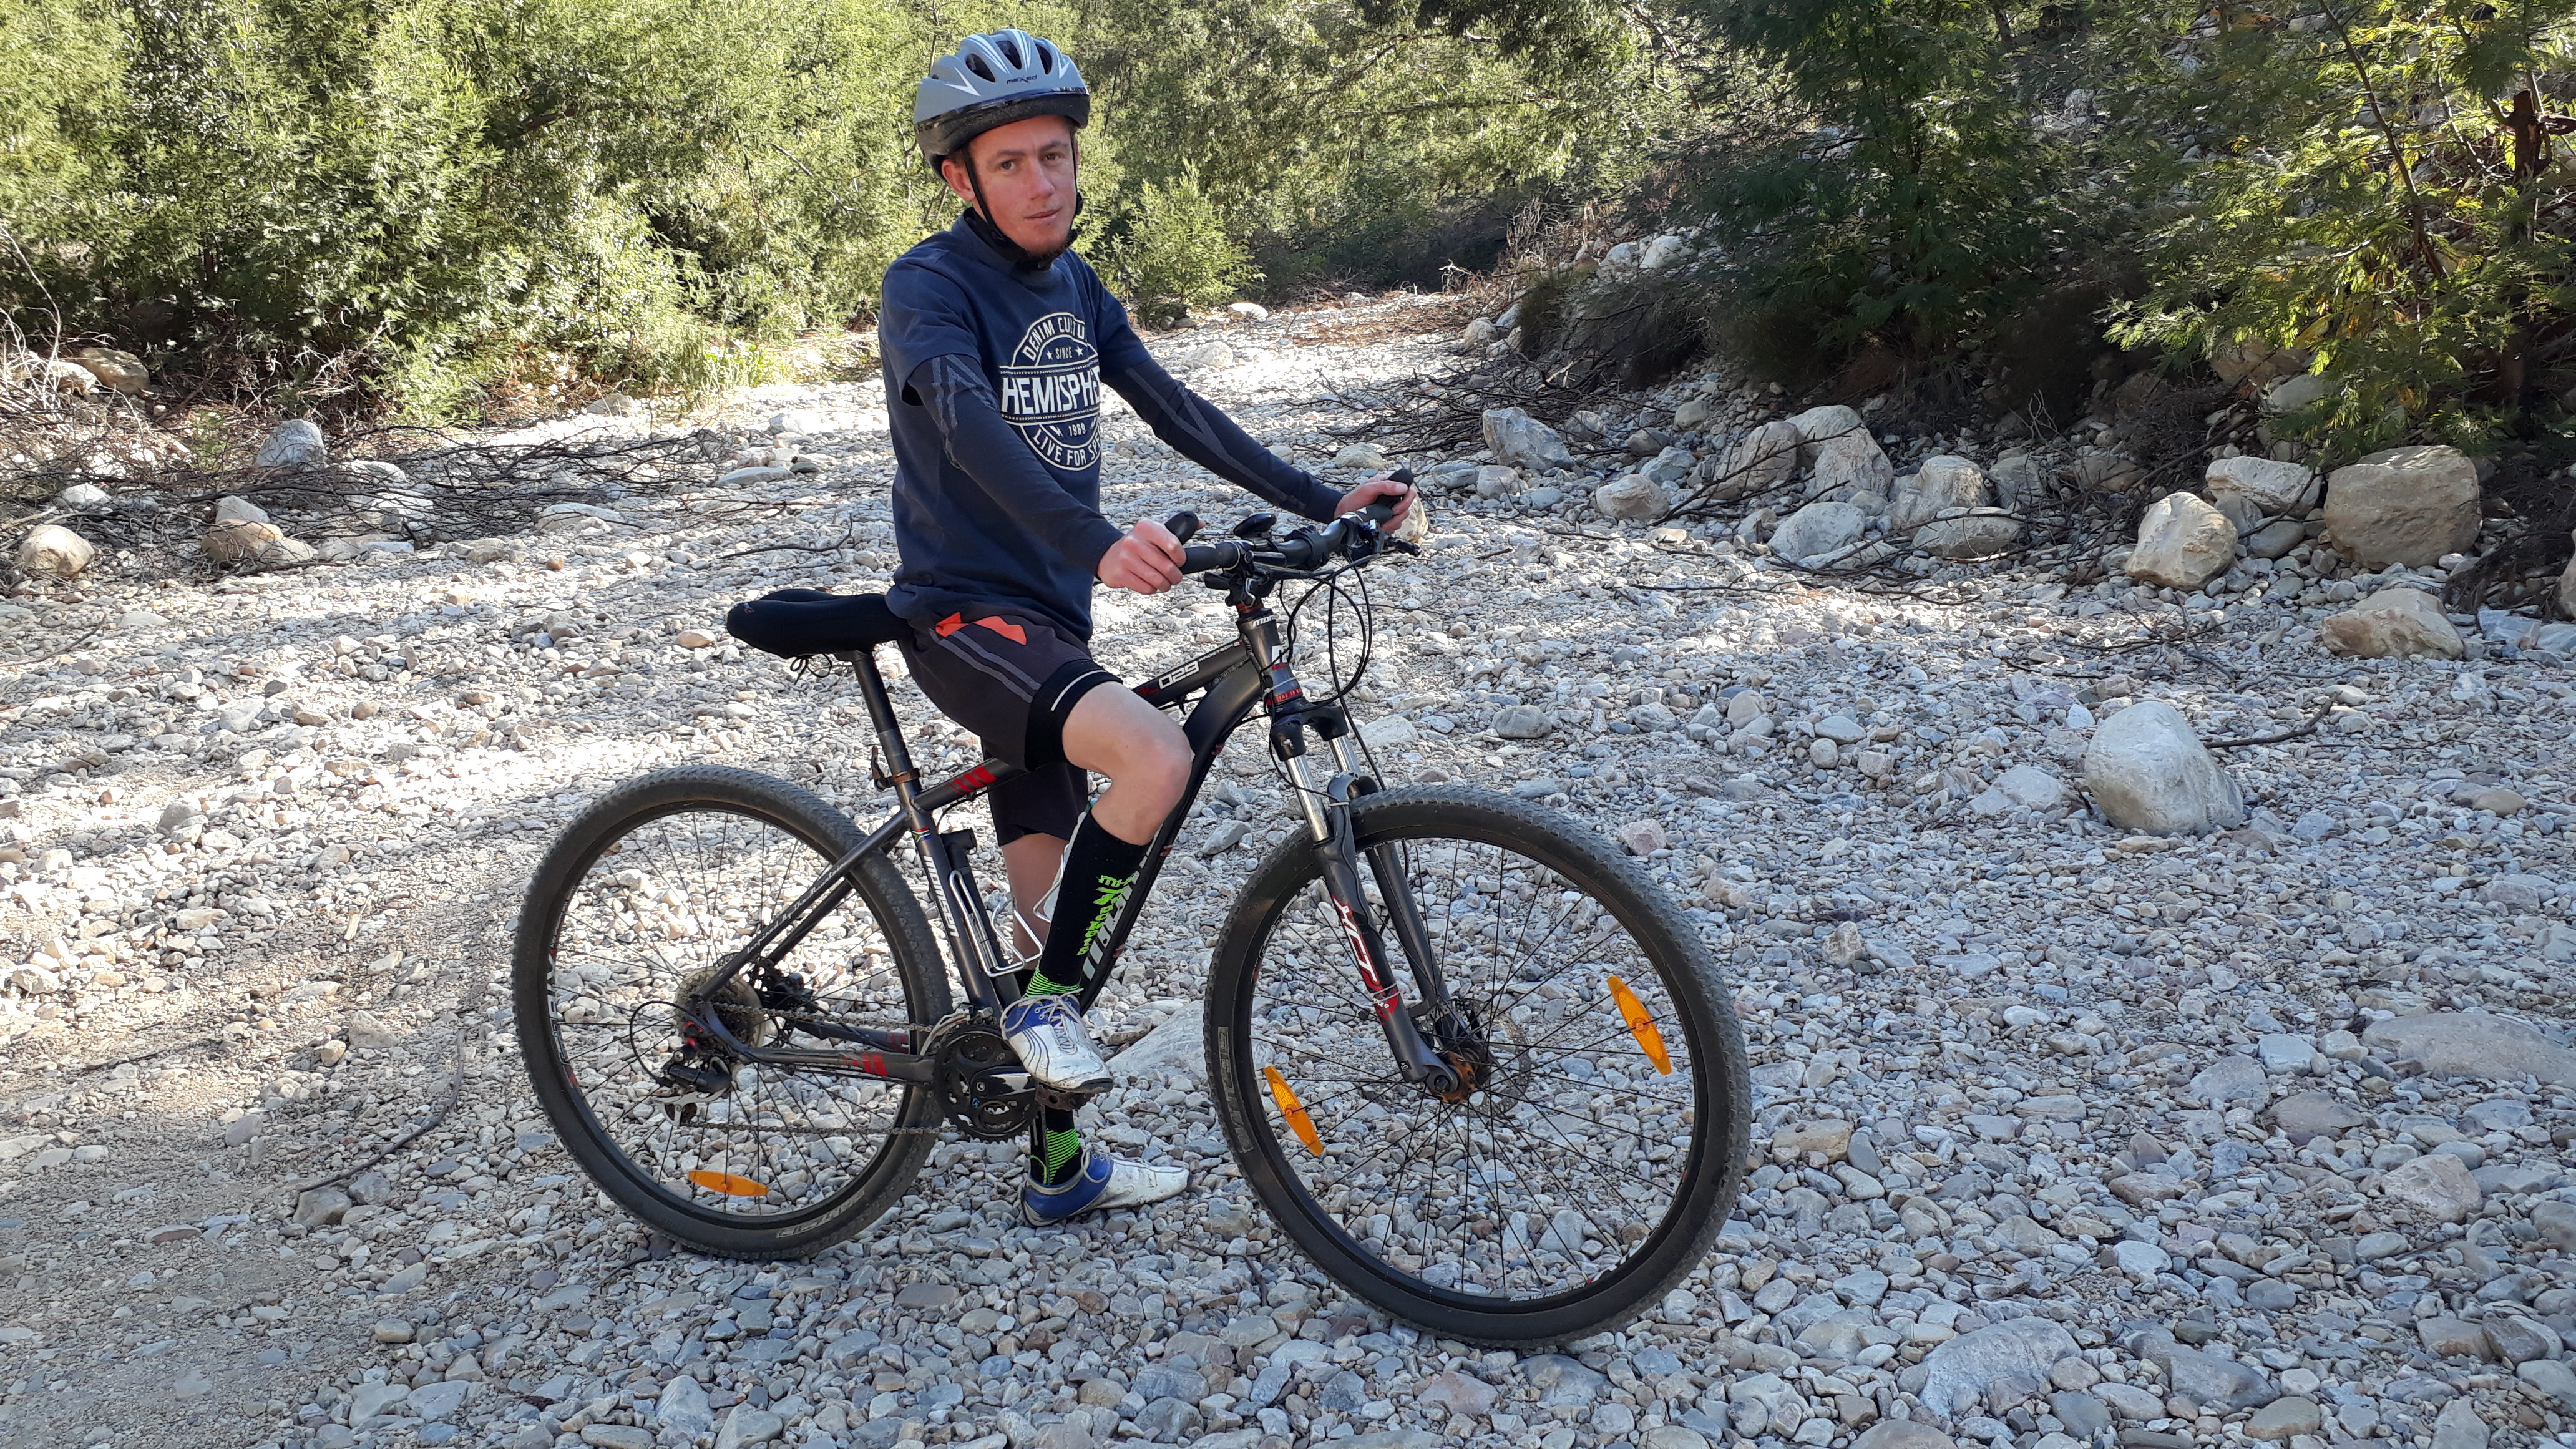 DOUBLE LUNG TRANSPLANT ENABLES YOUNG CYCLIST TO RACE AGAIN